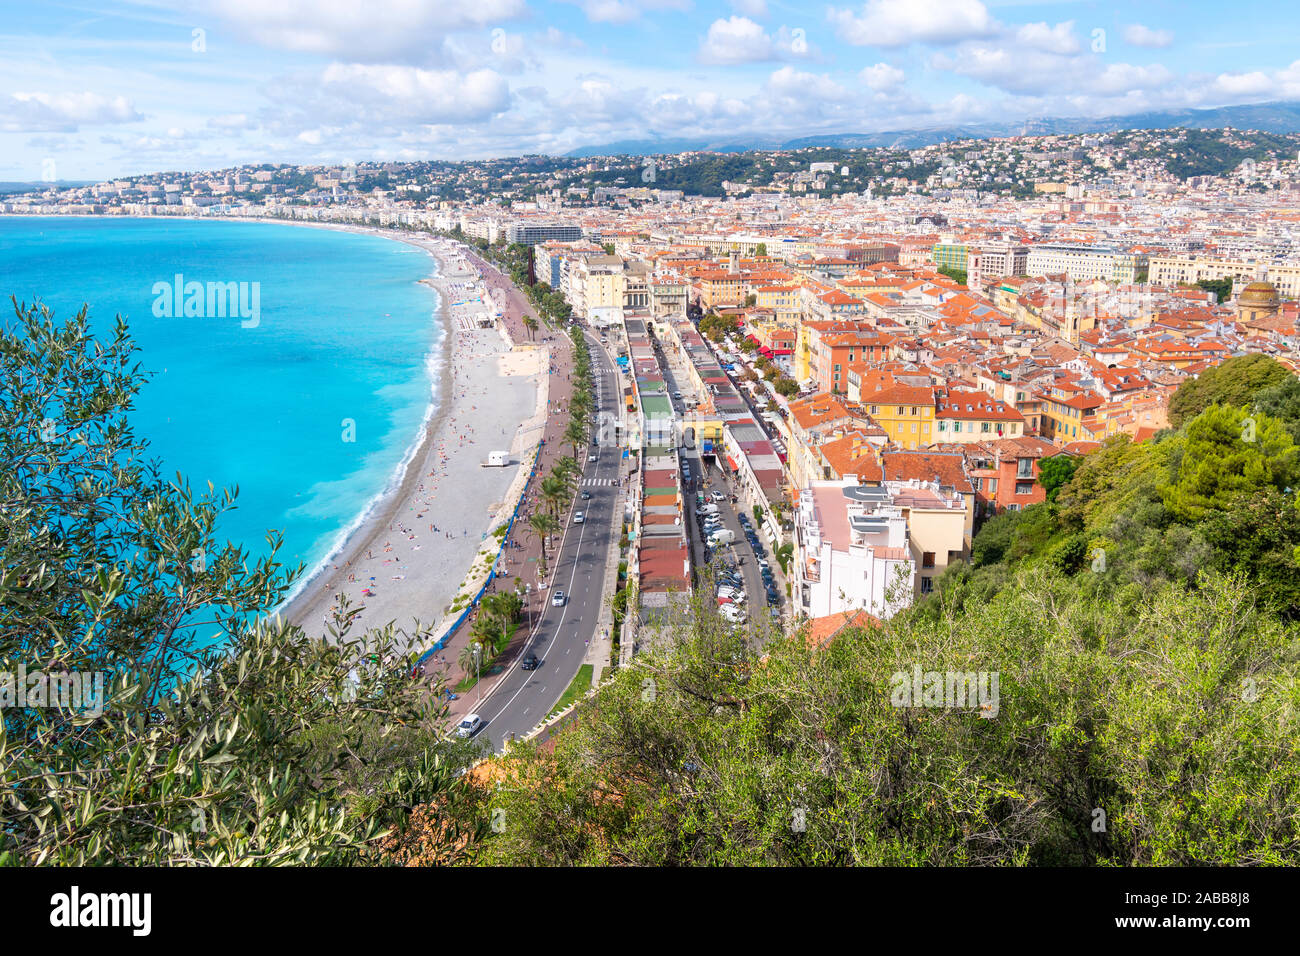 View from the Castle Hill Park of the Bay of Angels, Promenade des Anglais, Old Town and the city of Nice France on the French Riviera. Stock Photo